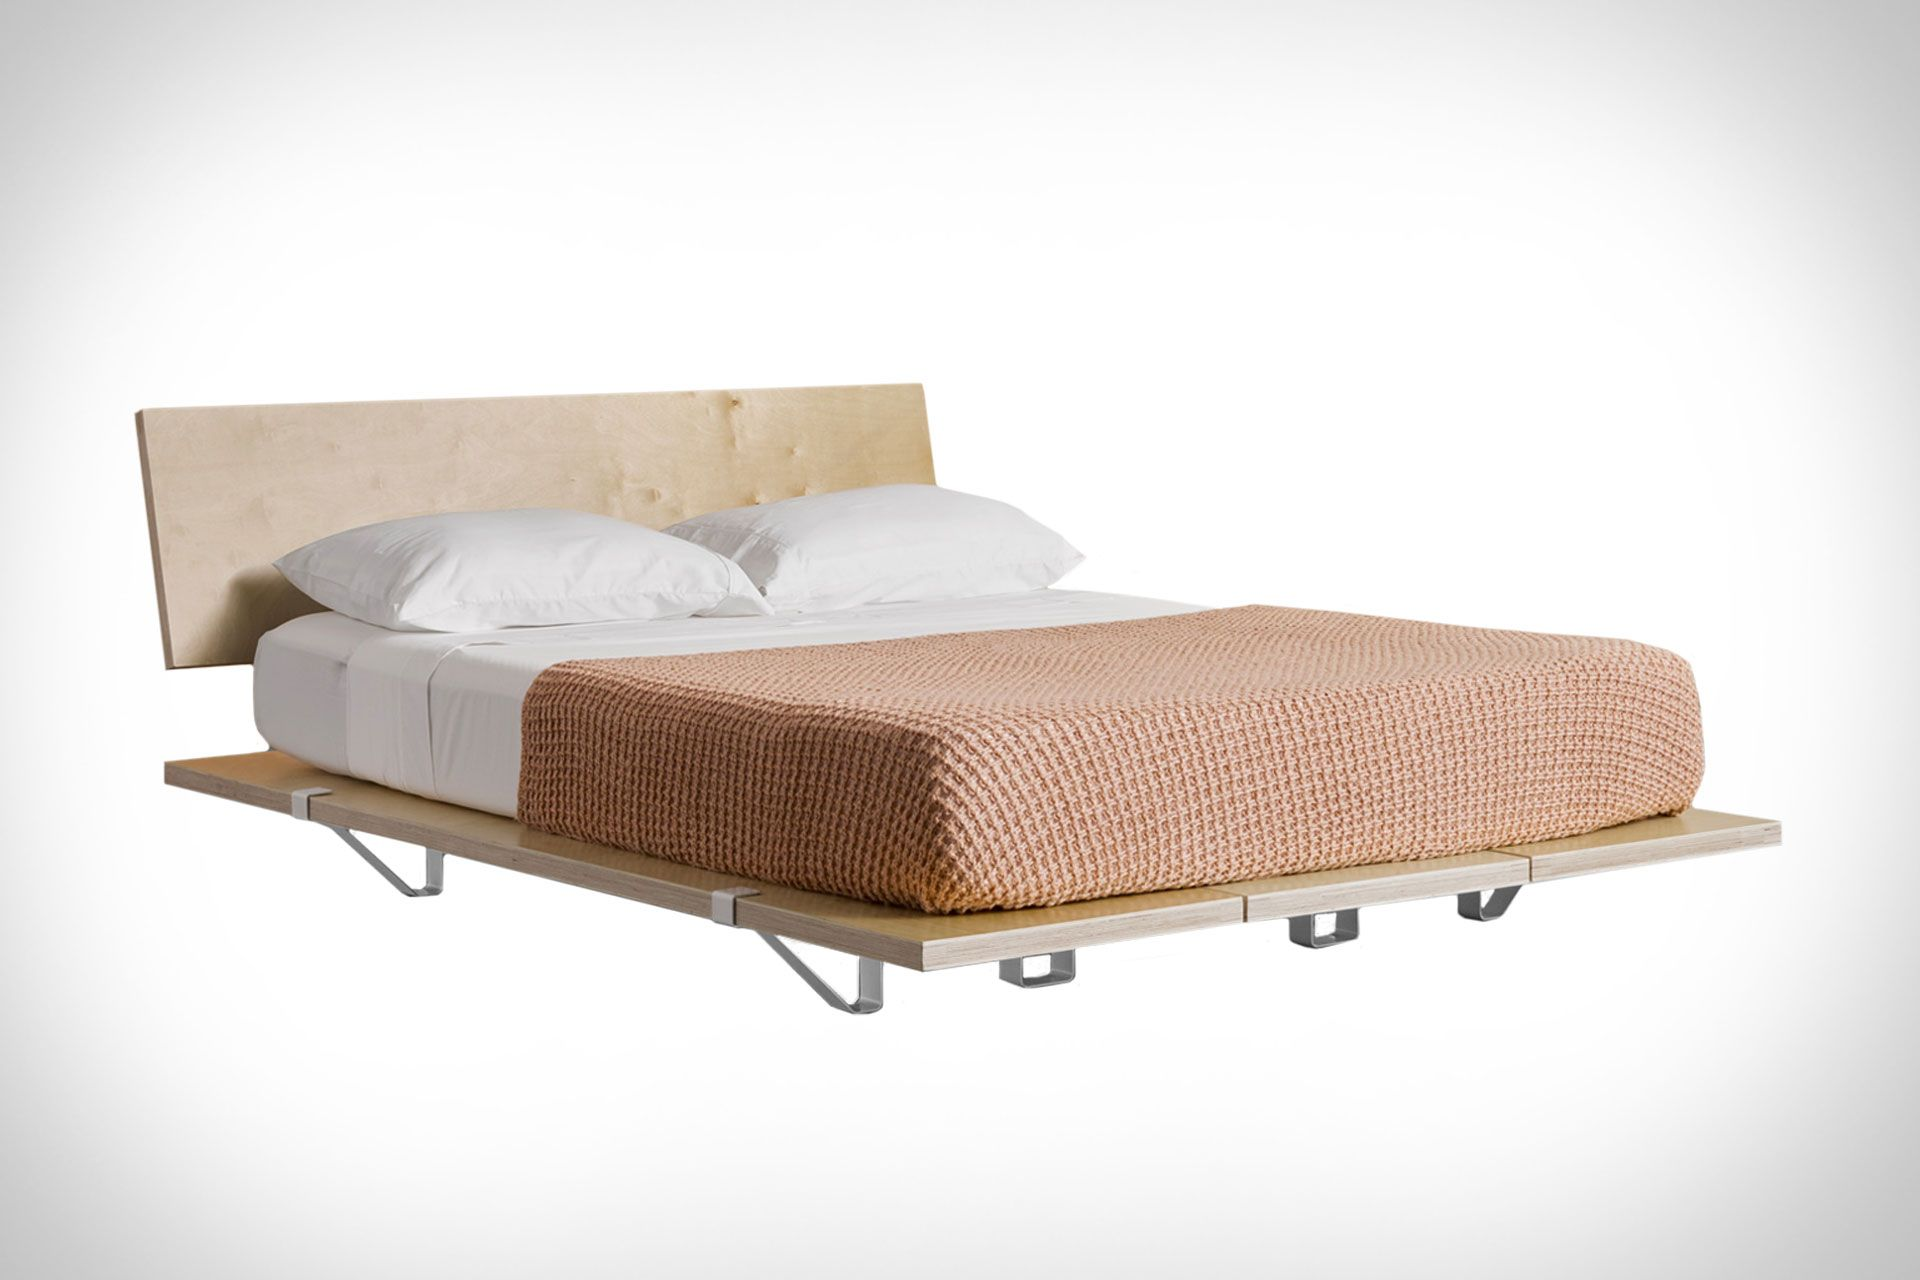 Floyd Bed Frame (With images) Floyd bed, High quality